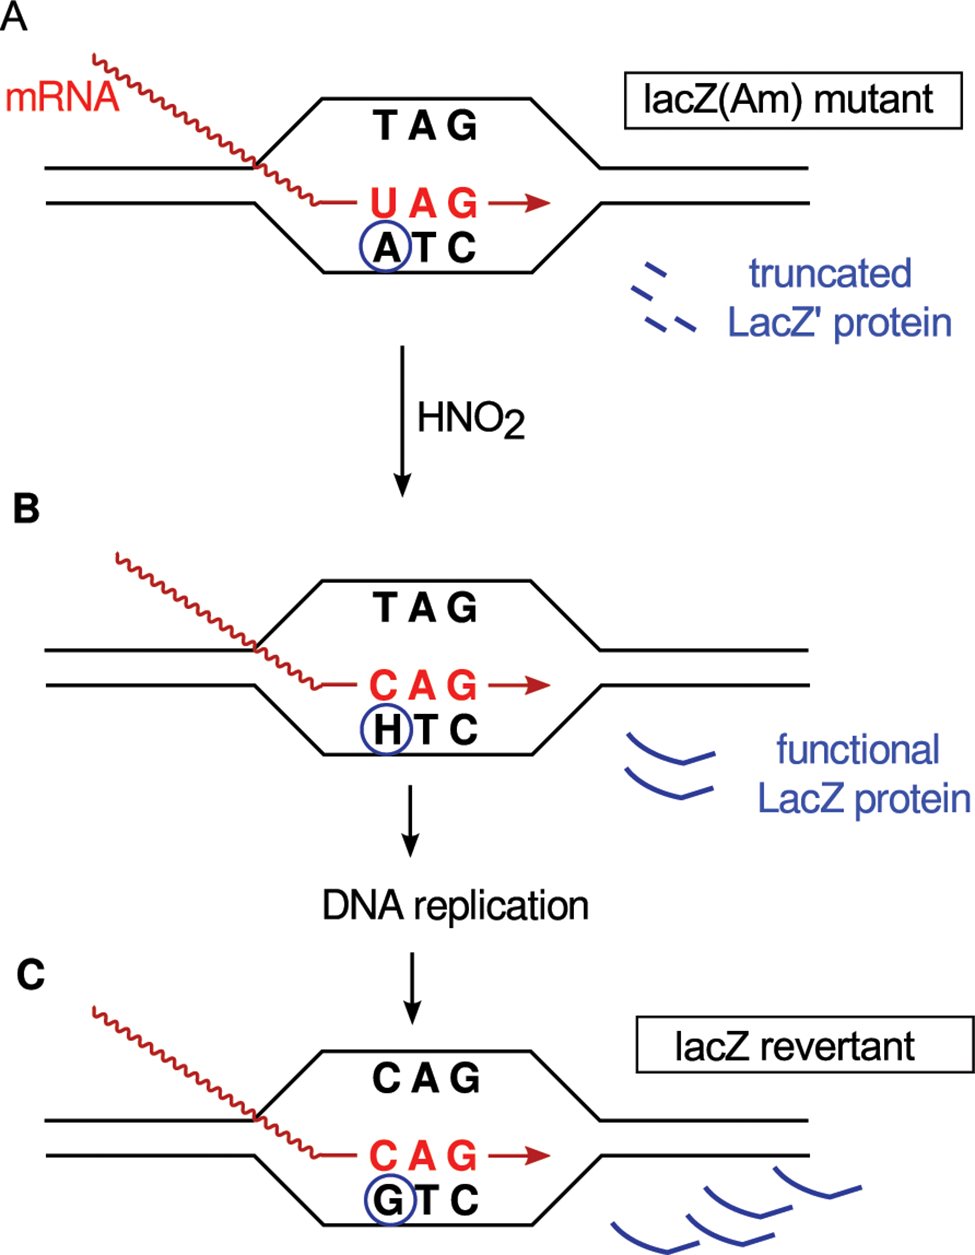 Example of retromutagenesis.